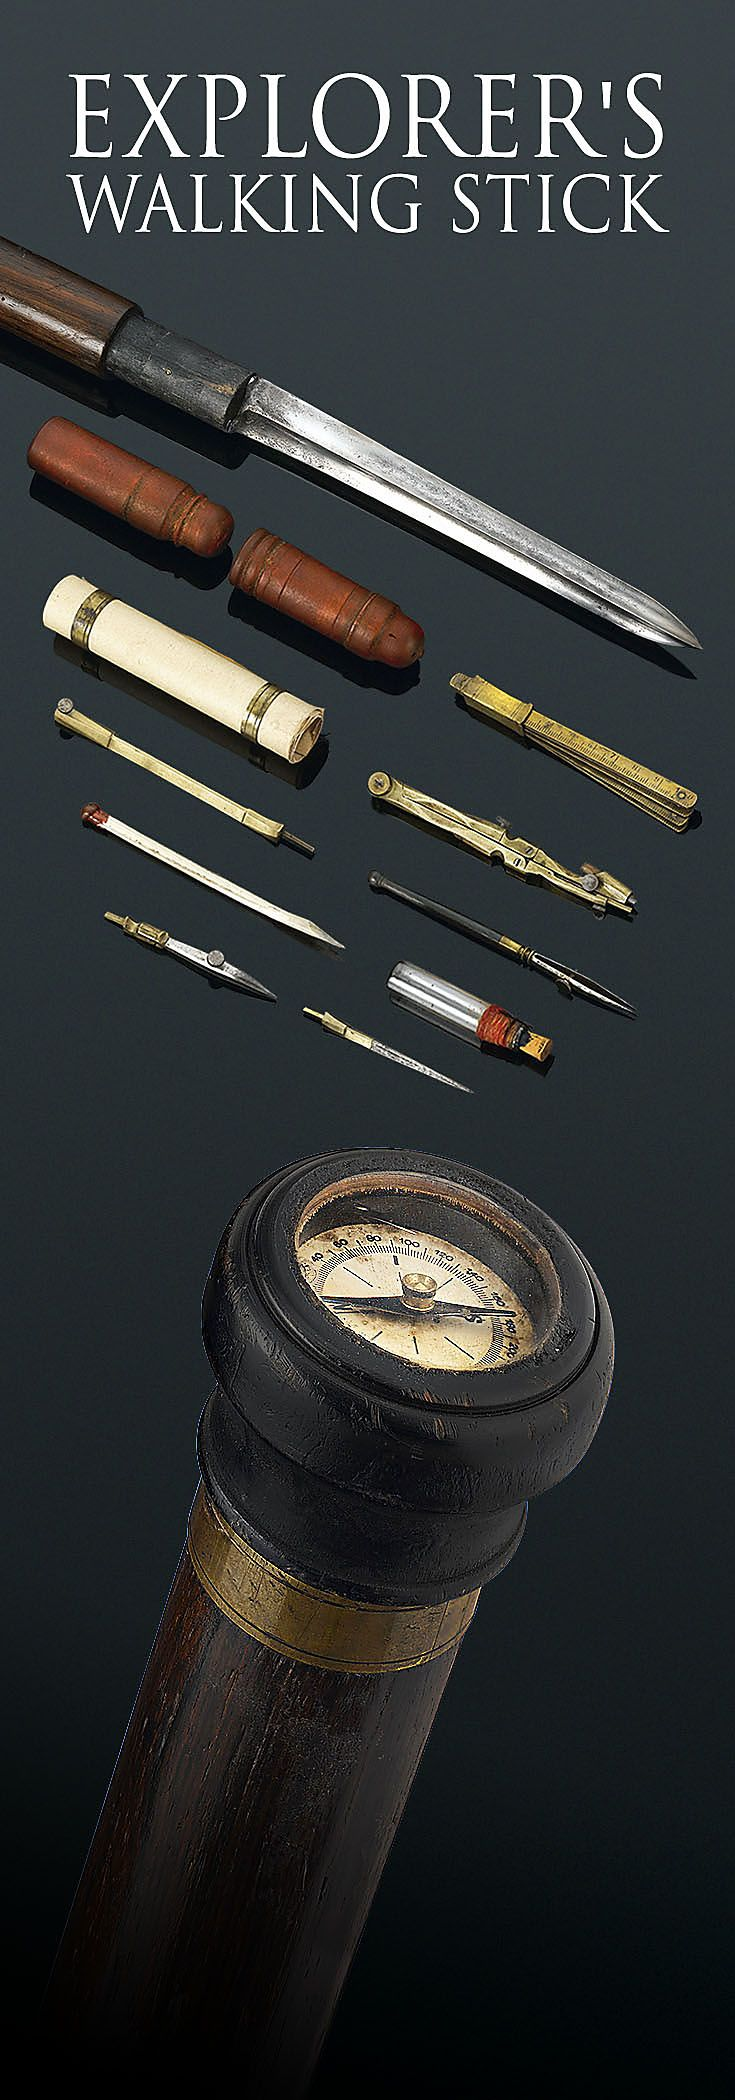 This extremely rare explorer's cane is the perfect companion for the intrepid adventurer. A small compass is set into the knob handle, while several more instruments are tucked inside the shaft, including a telescope, a bayonet, a drafting compass, pens and parchment papers, field maps, and plotting tools. An ink bottle and case are also included, completing this extraordinary cane ~ M.S. Rau Antiques